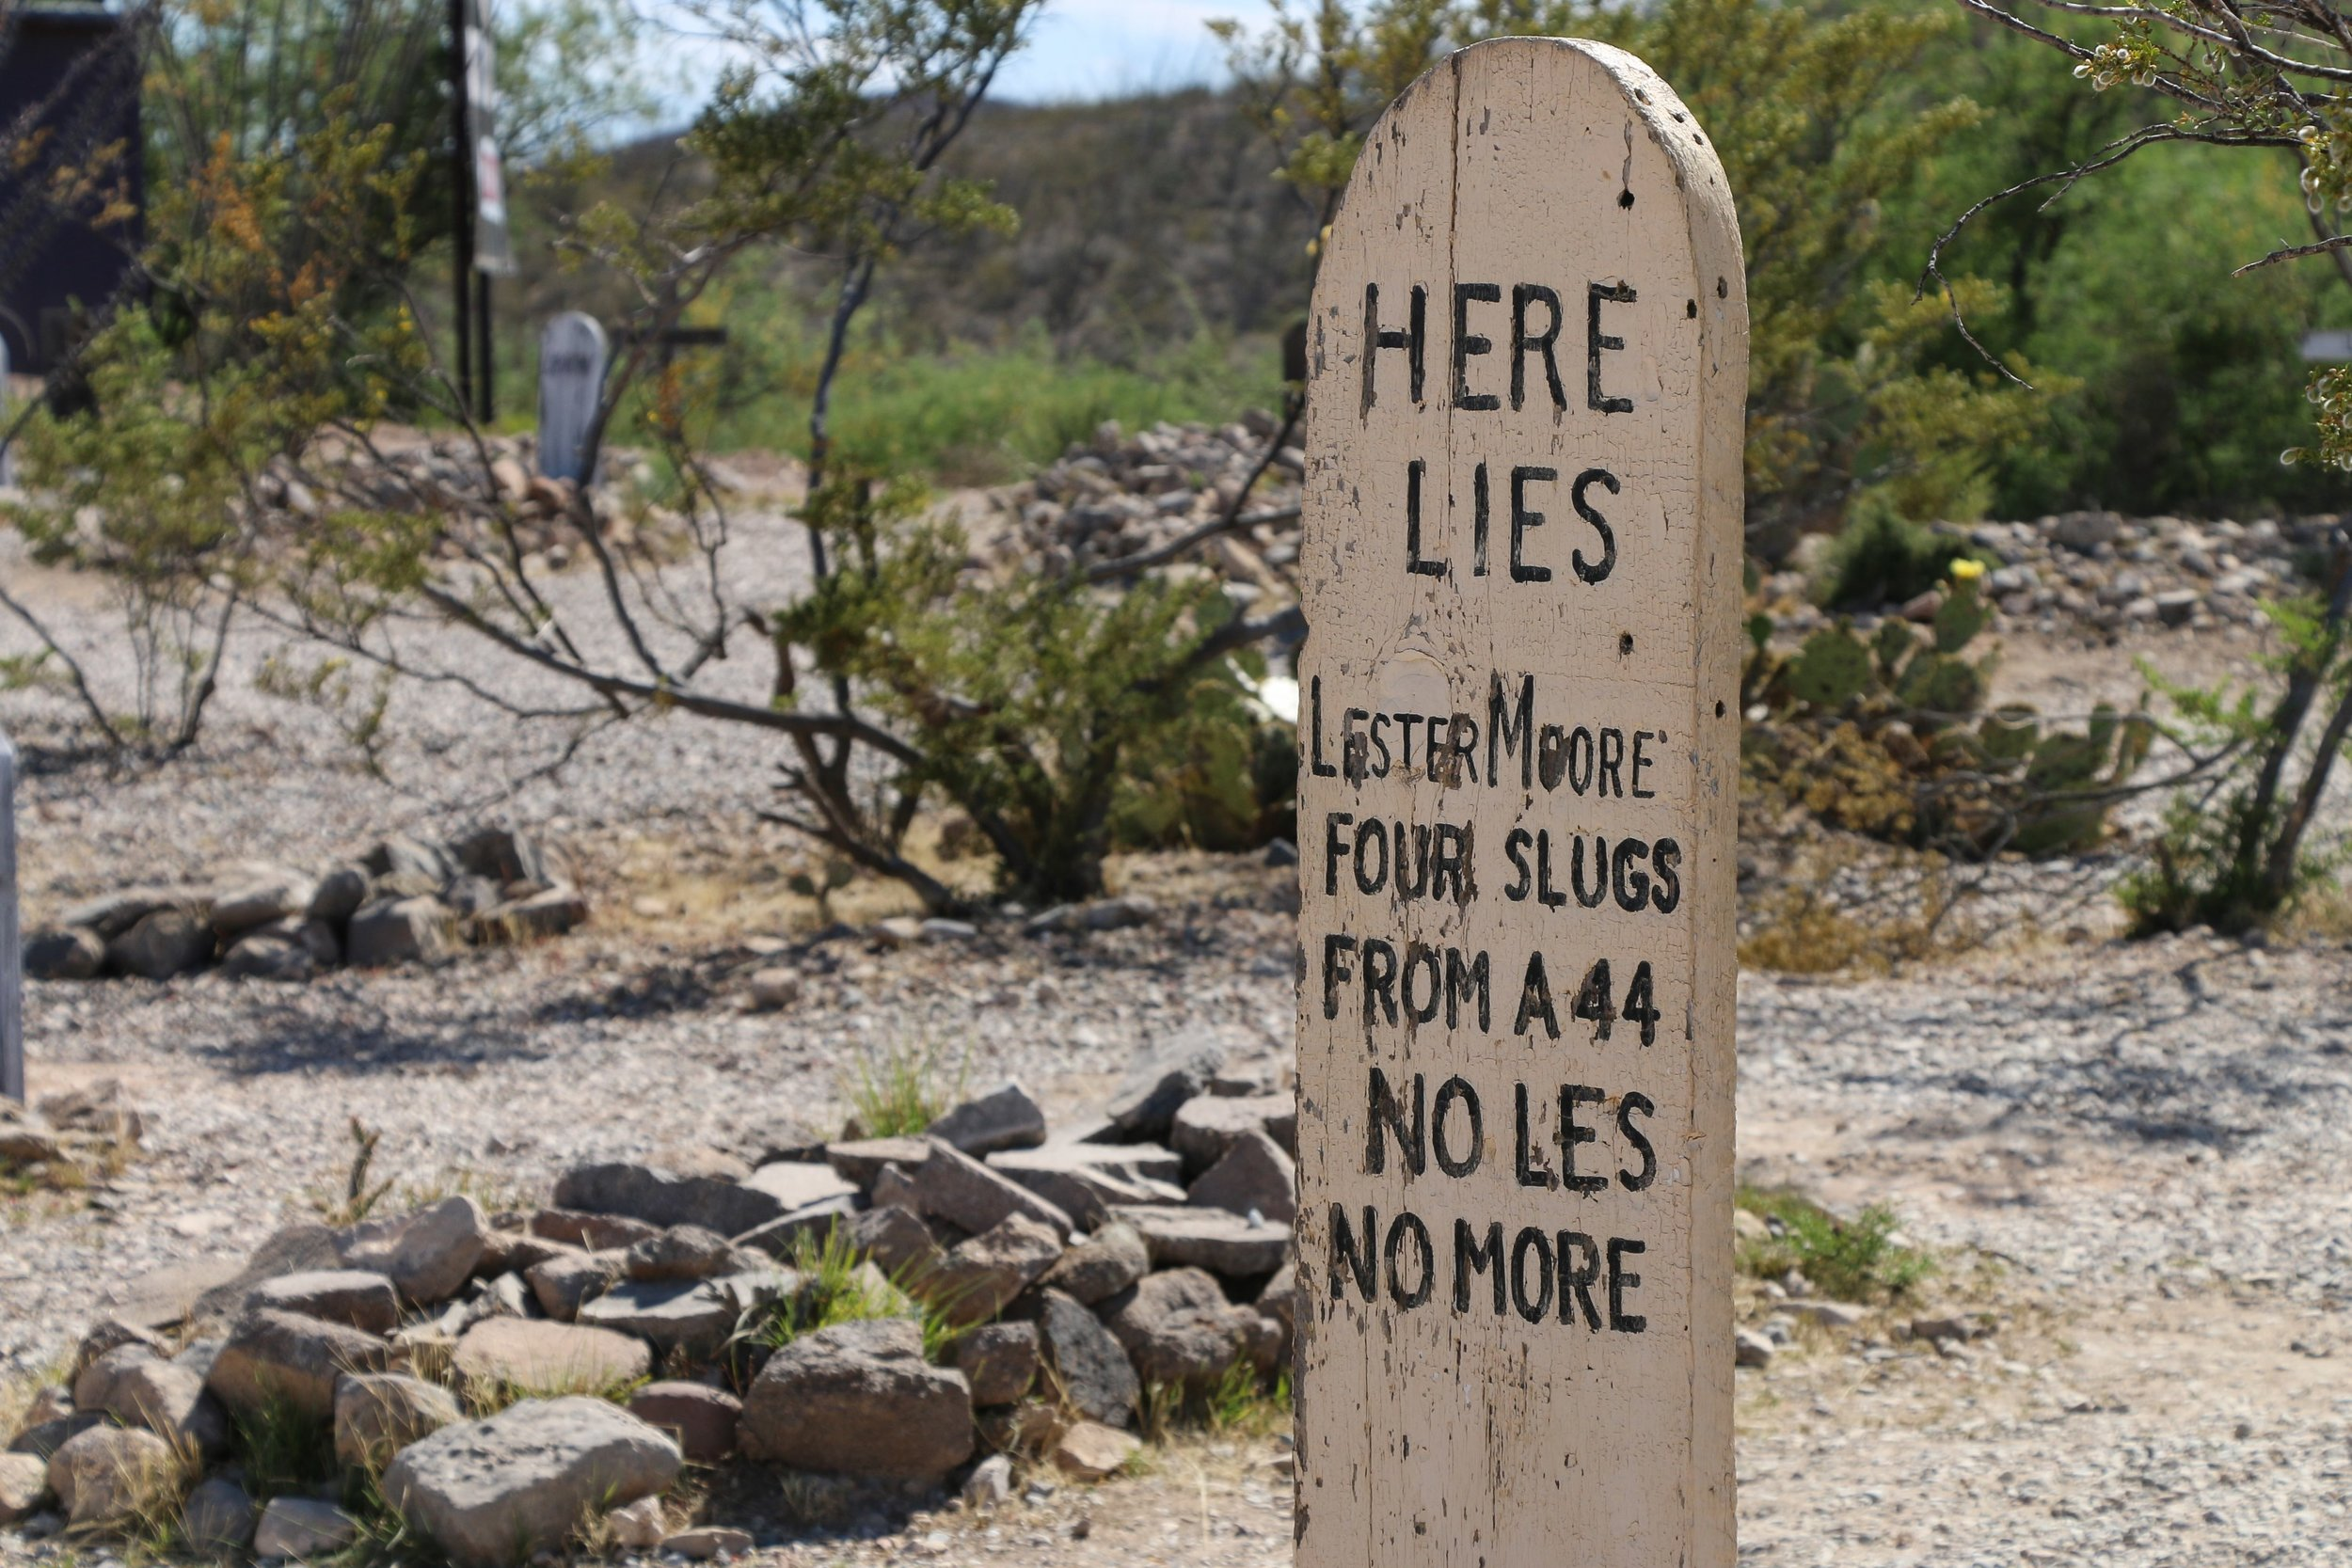 One of the many iconic tombstones in Boothill Graveyard.